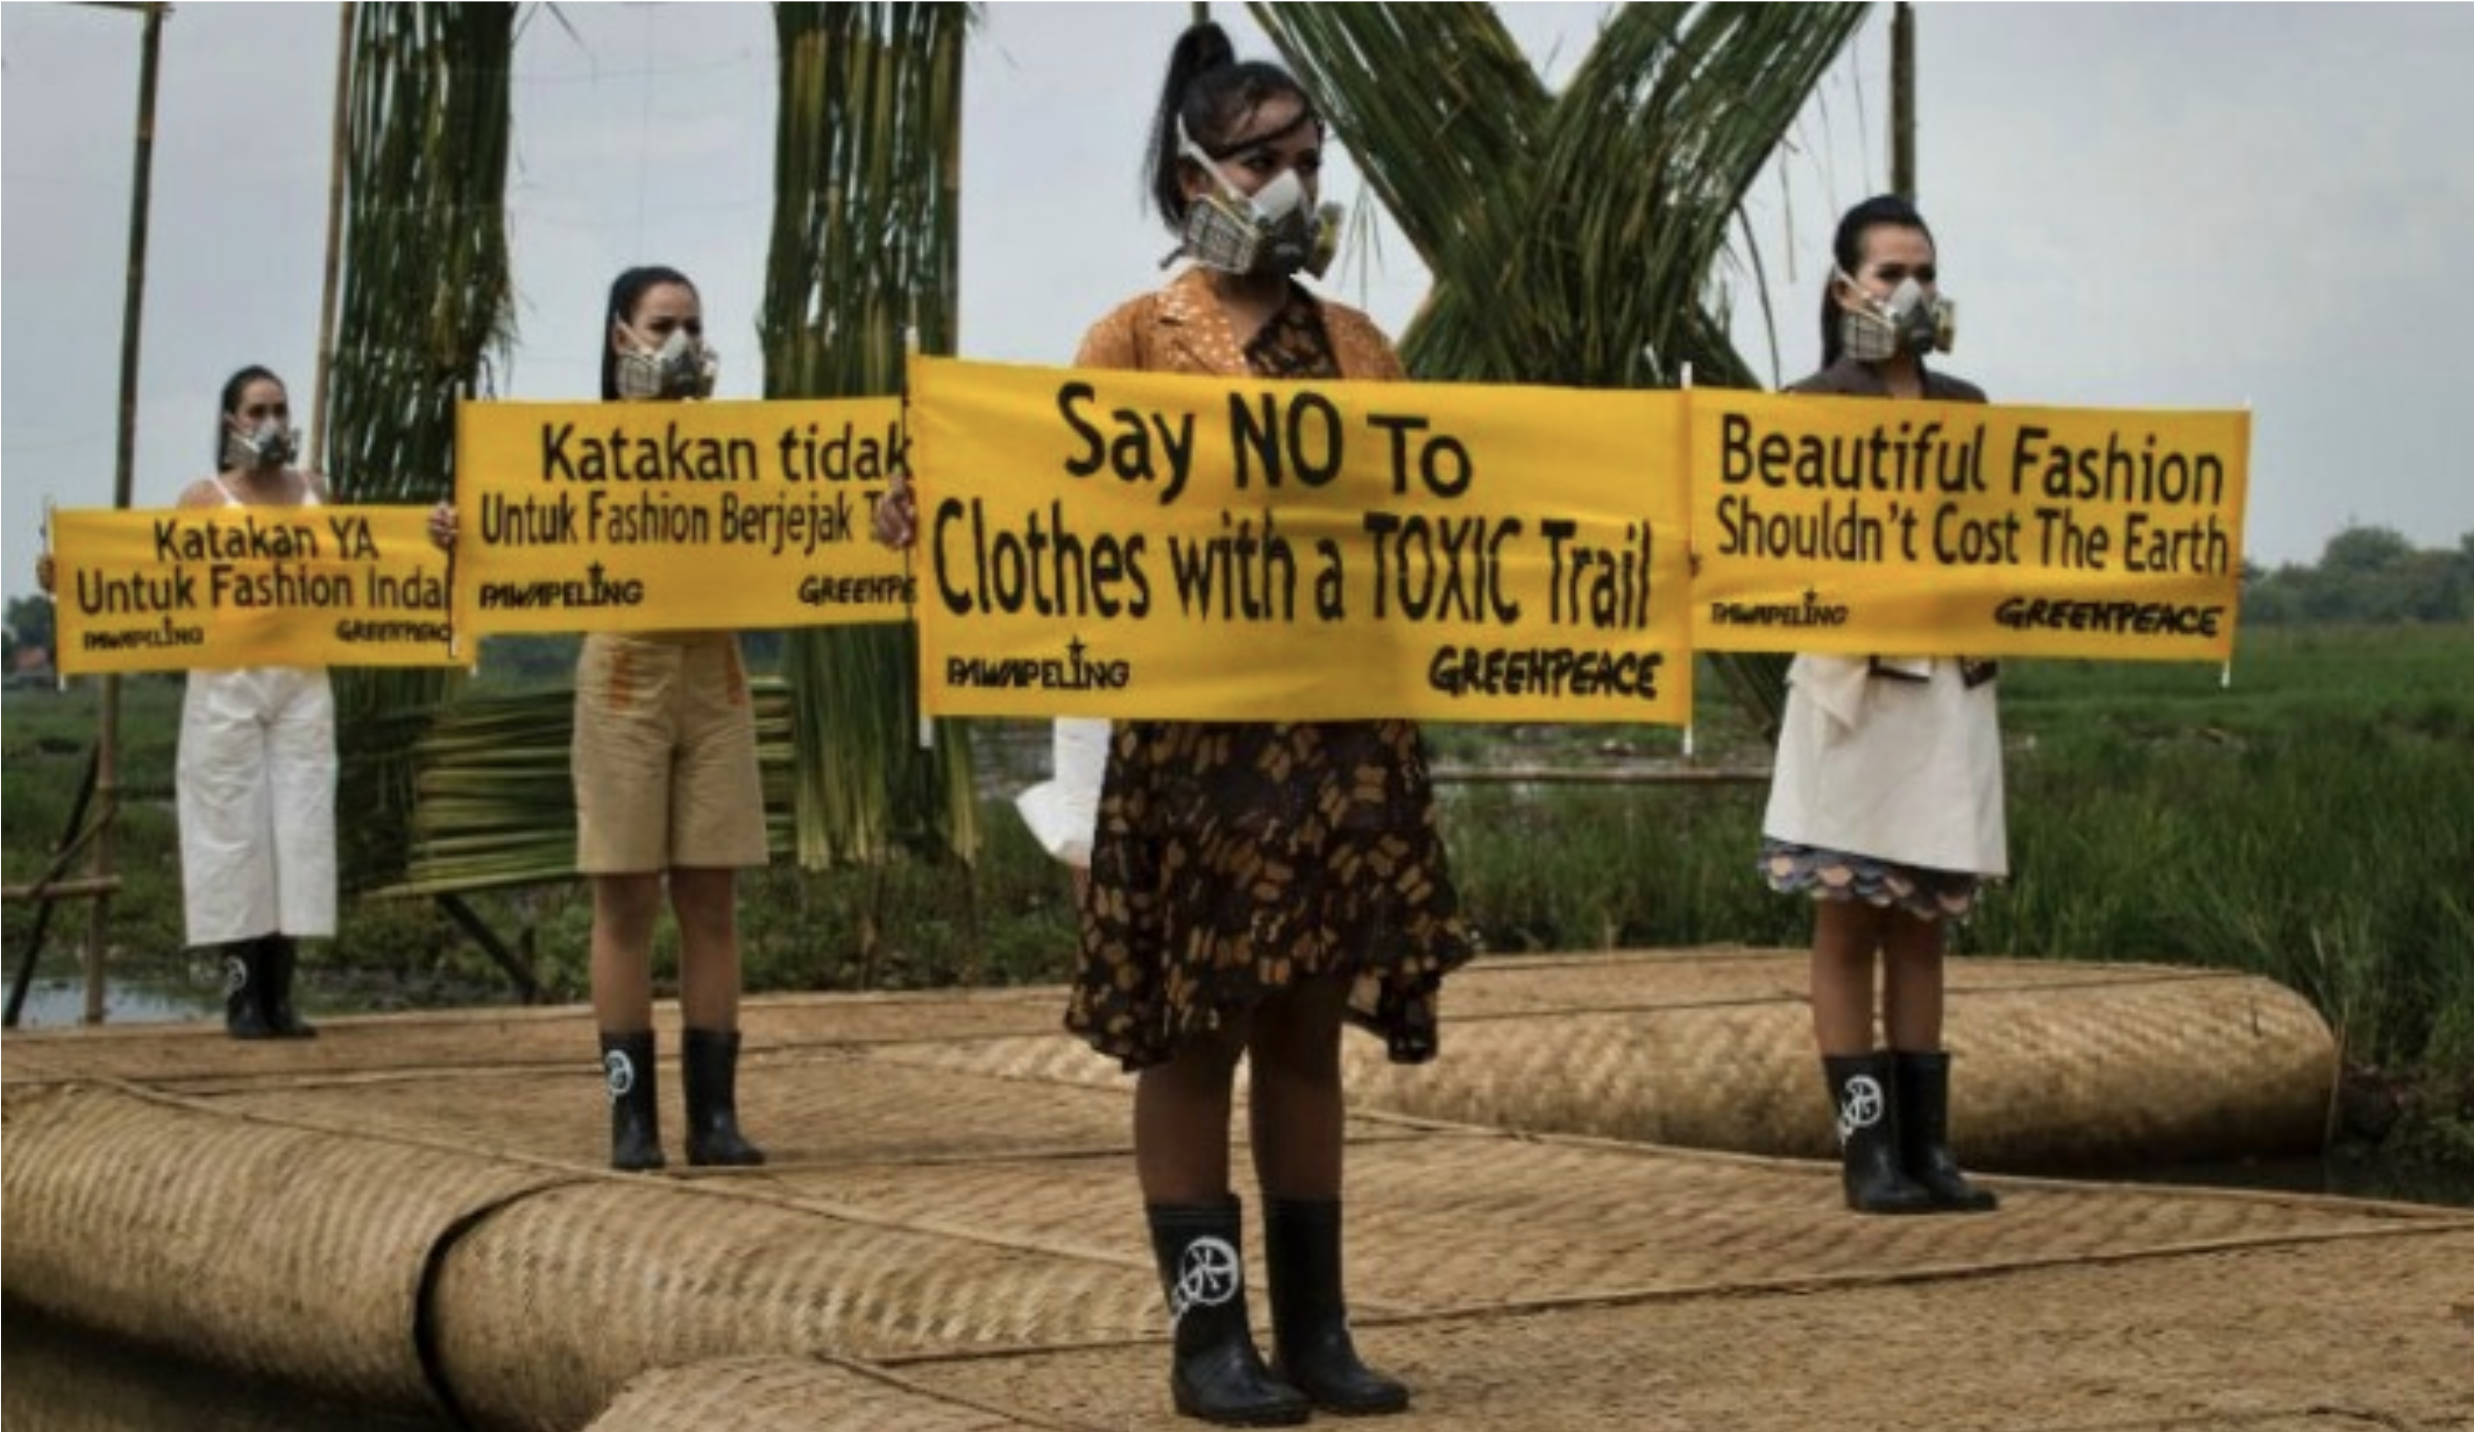 In 2014 Greenpeace organized a catwalk with Indonesian models to protest toxic fashion.